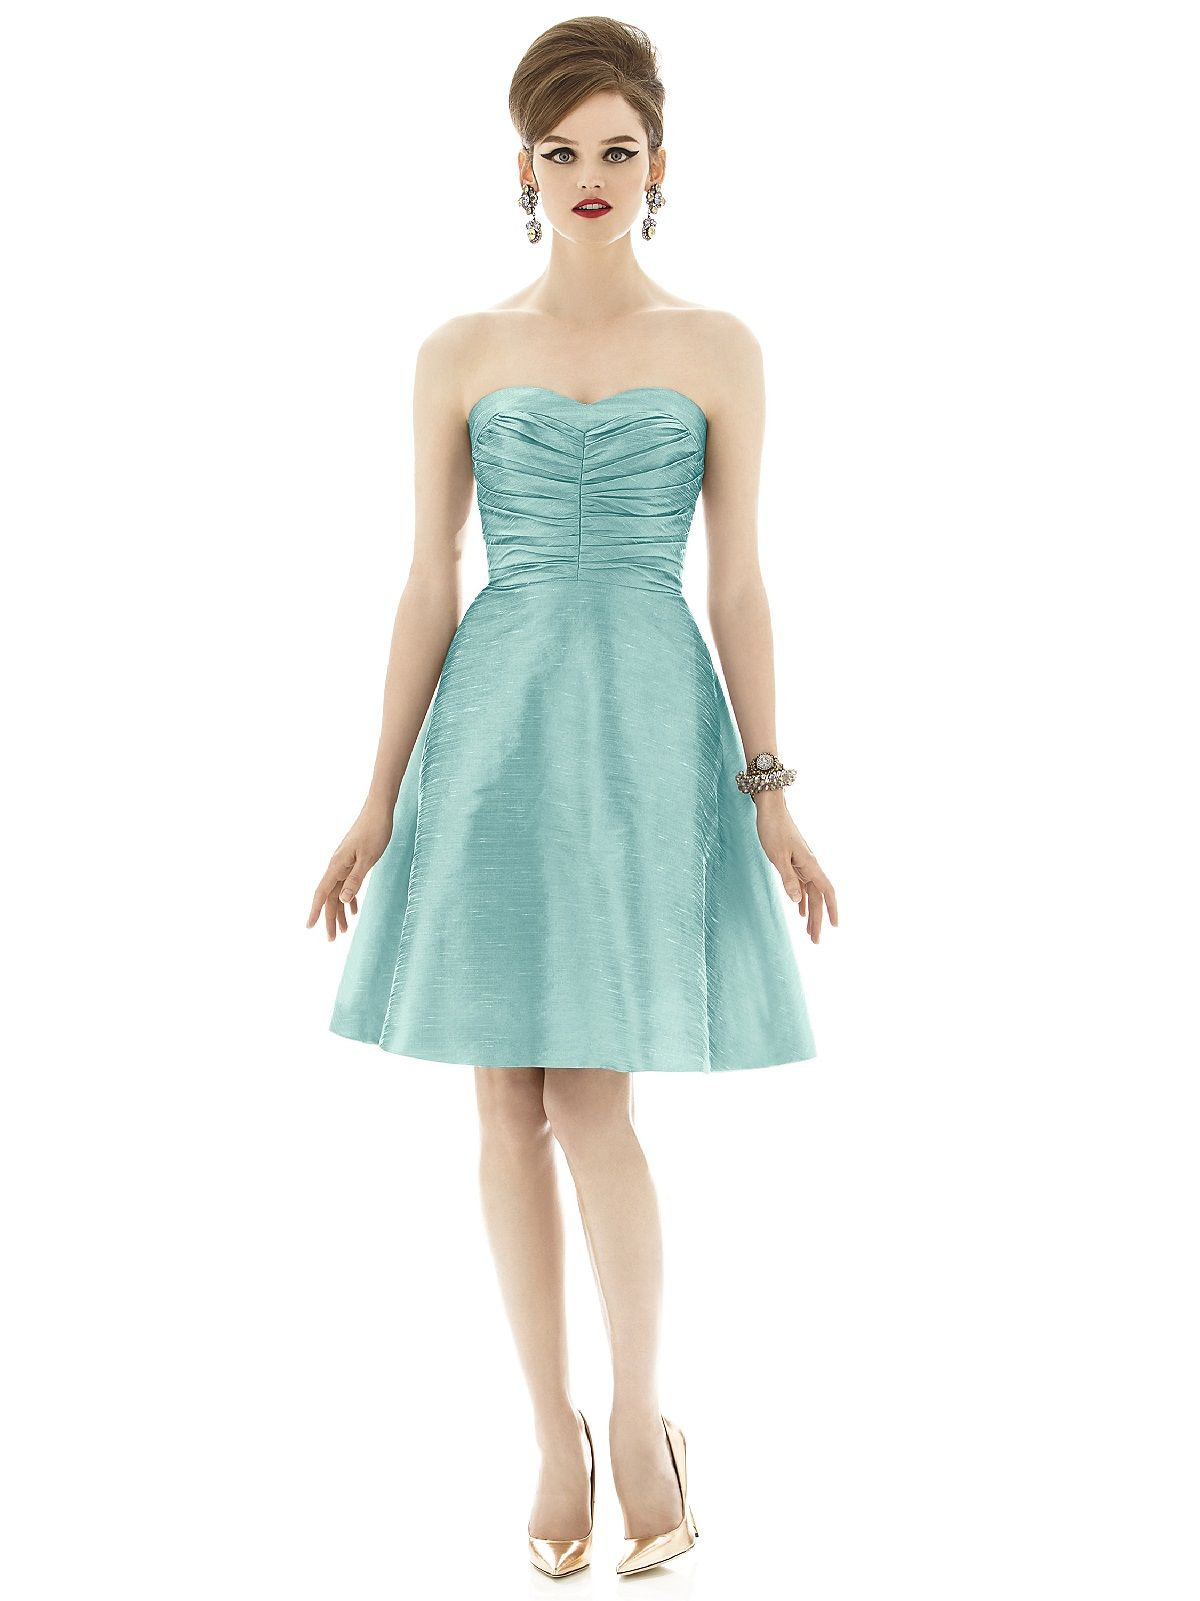 Alfred sung style d630 httpdessydressesbridesmaid the alfred sung bridesmaid collection offers fresh contemporary bridesmaid dresses while keeping your budget in mind ombrellifo Image collections